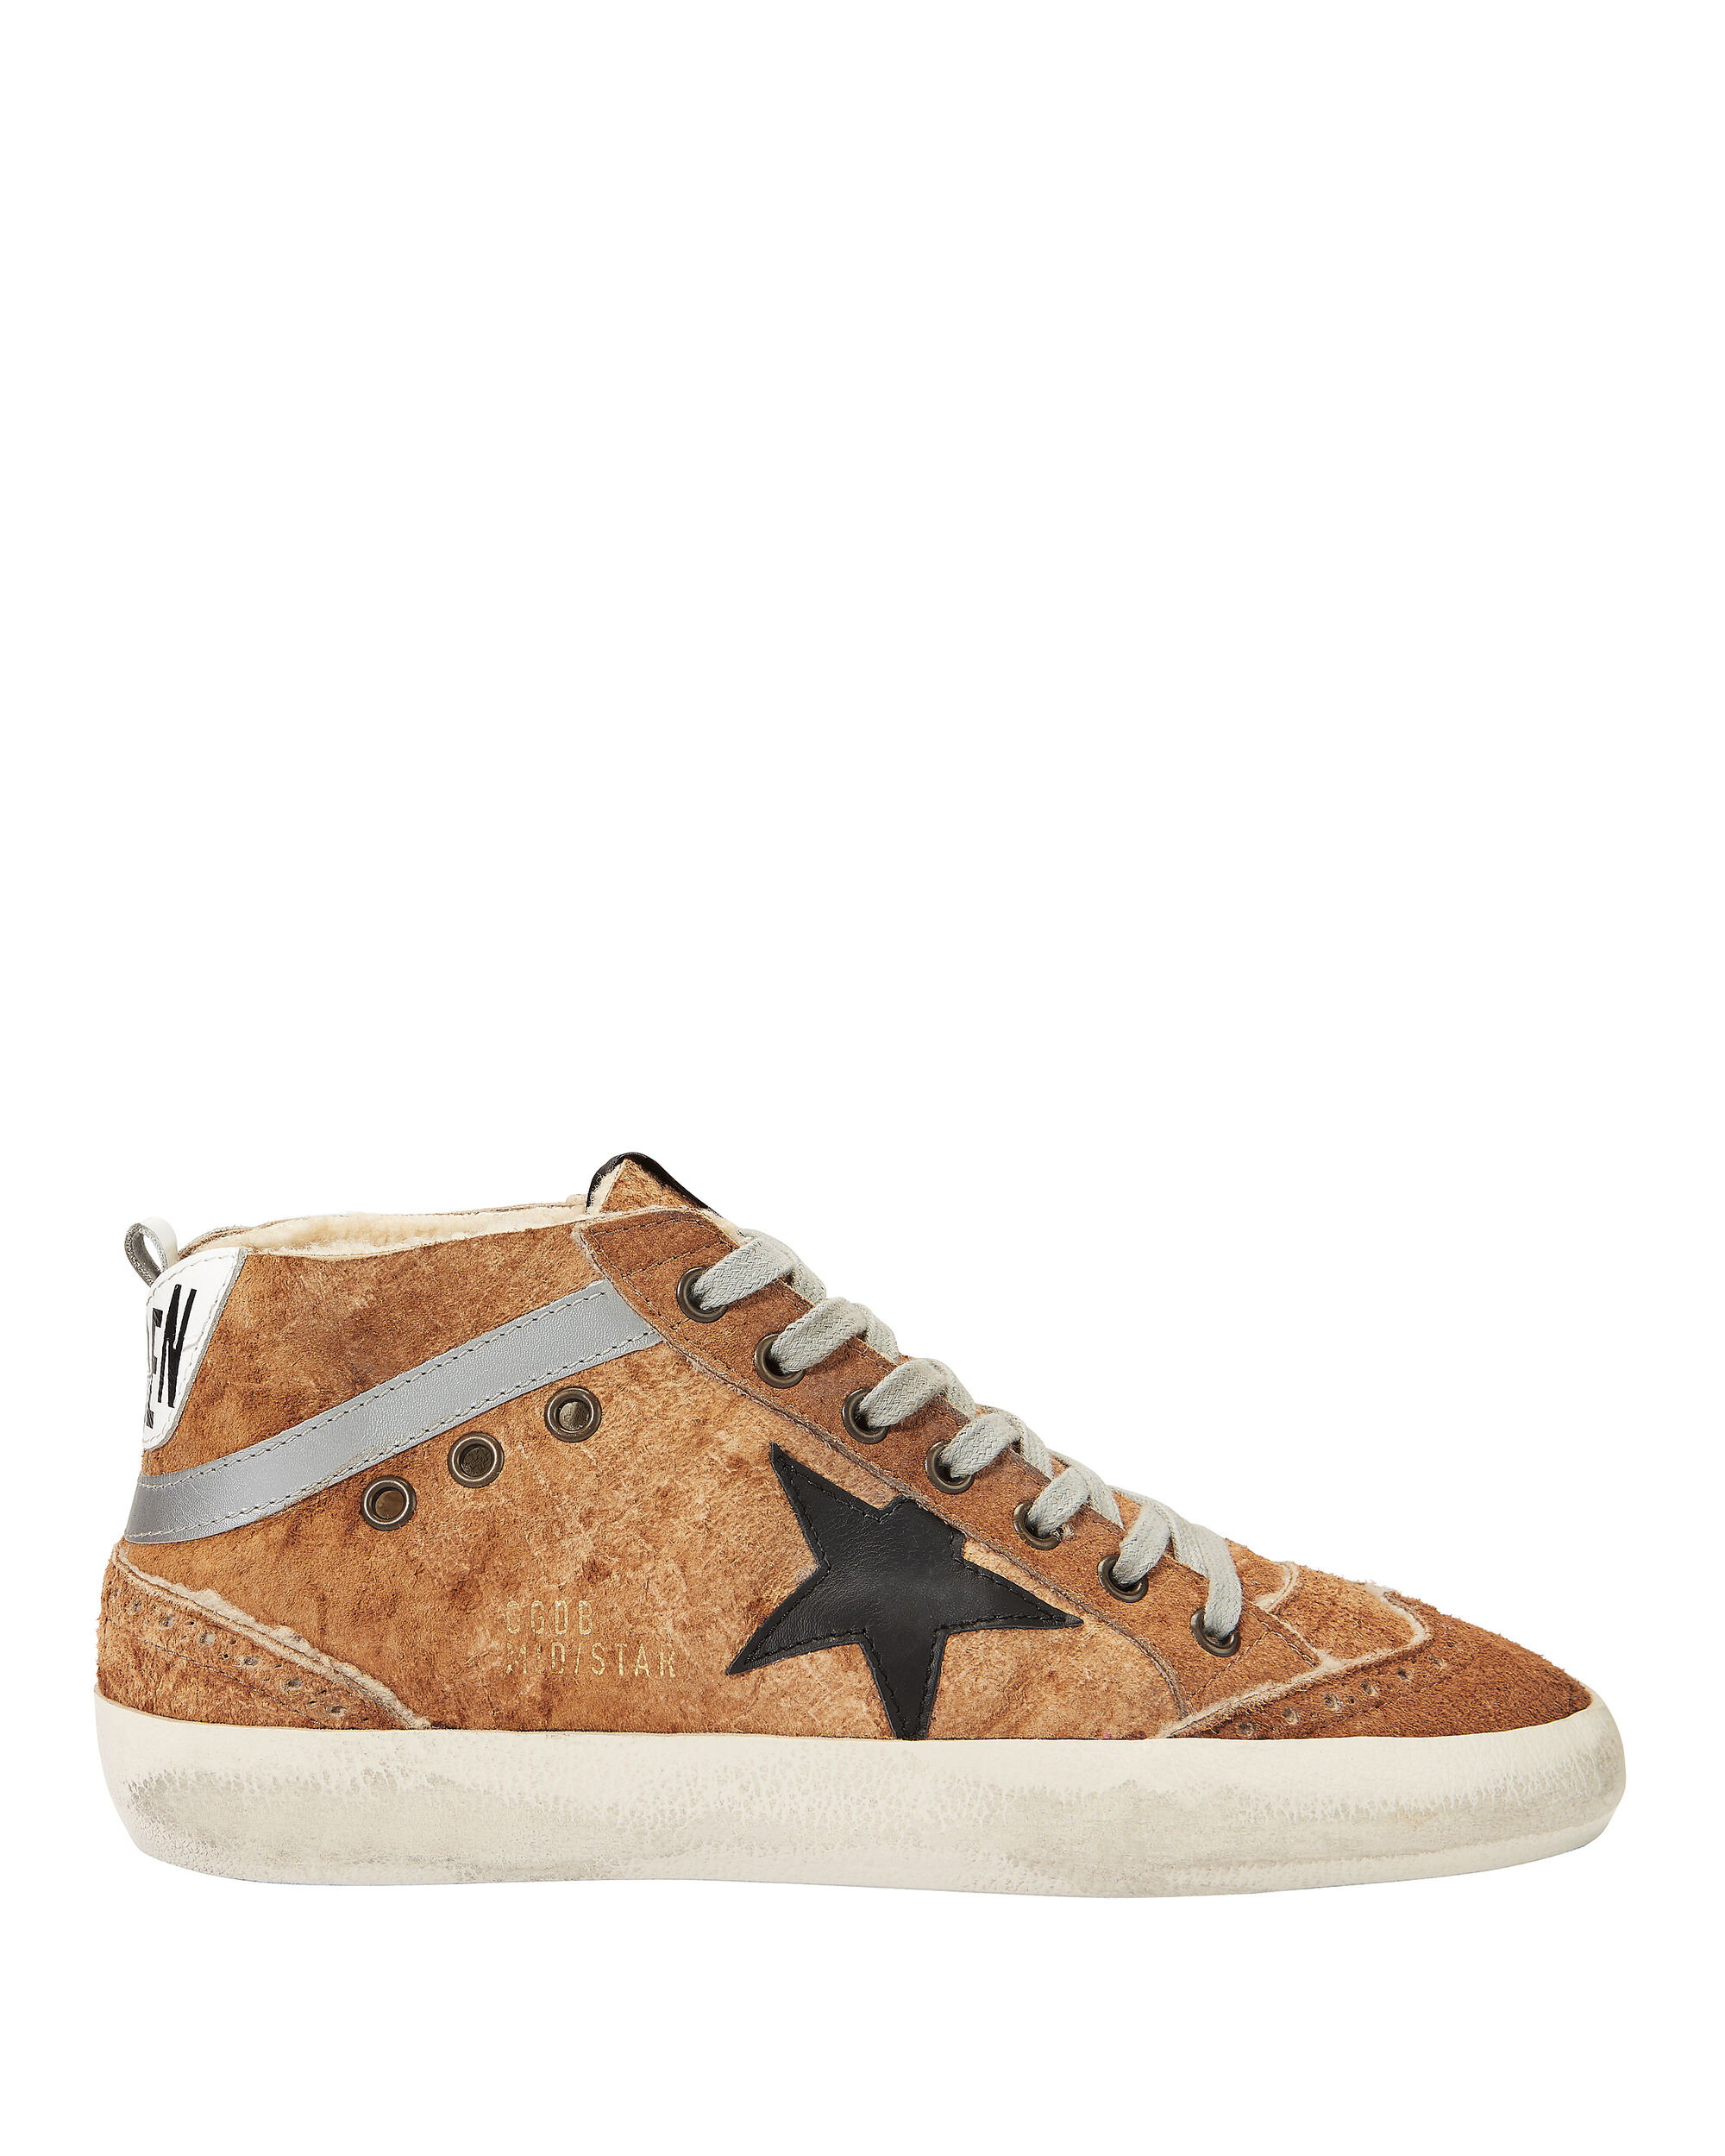 MID STAR BROWN LEATHER AND SHEARLING SNEAKERS BROWN